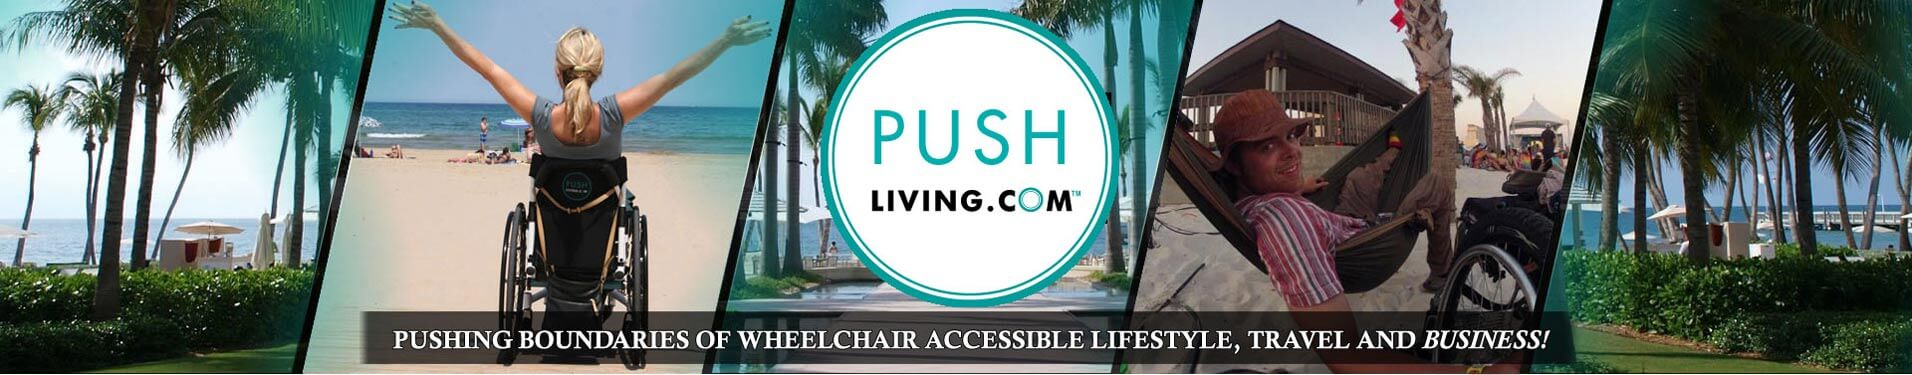 Wheelchair Accessible Living